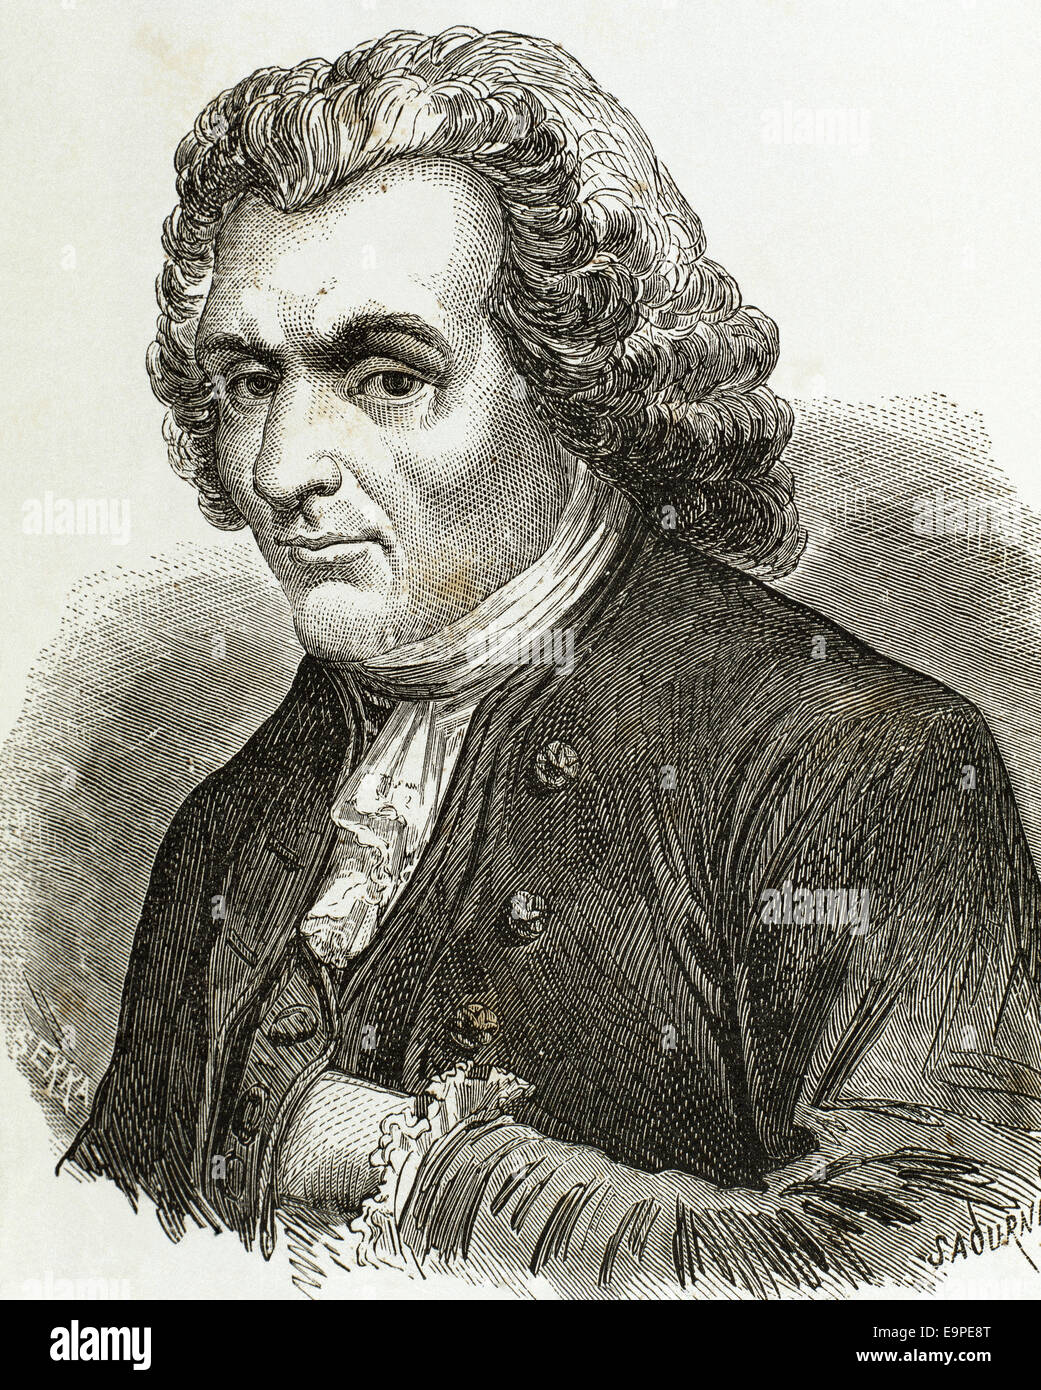 Jean-Jacques Rousseau (1712-1778). Genovese philosopher, writer, and composer. Portrait. Engraving. - Stock Image